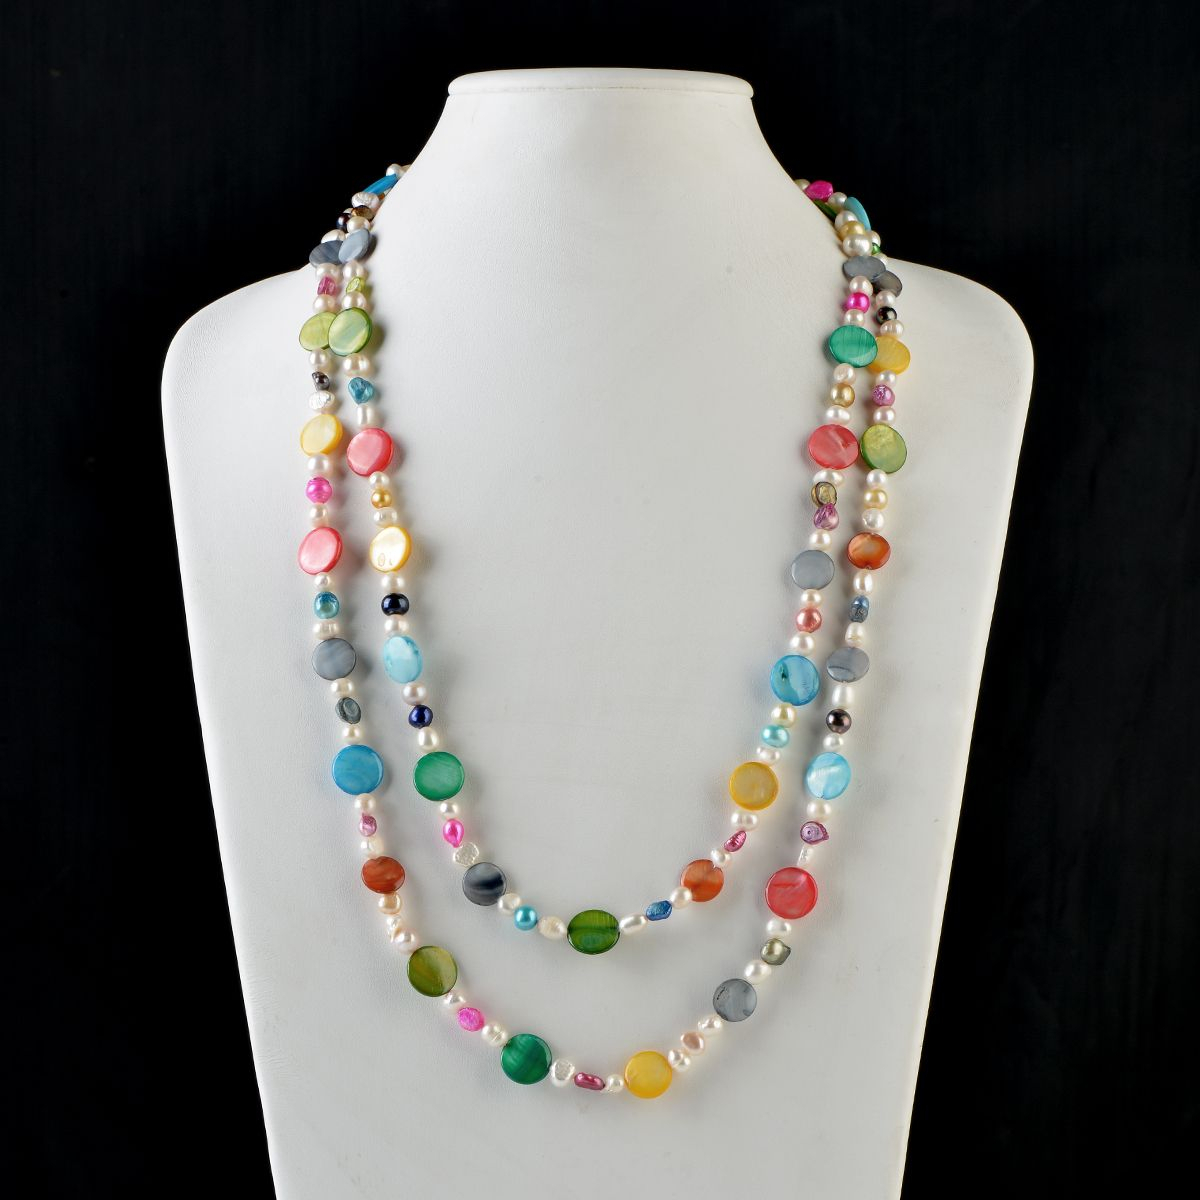 Fashion 60 Inch Long Multi Color Shell Beads Freshwater Cultured Pearls Necklace Pertaining To Most Recent Freshwater Cultured Pearls & Beads Necklaces (View 9 of 25)